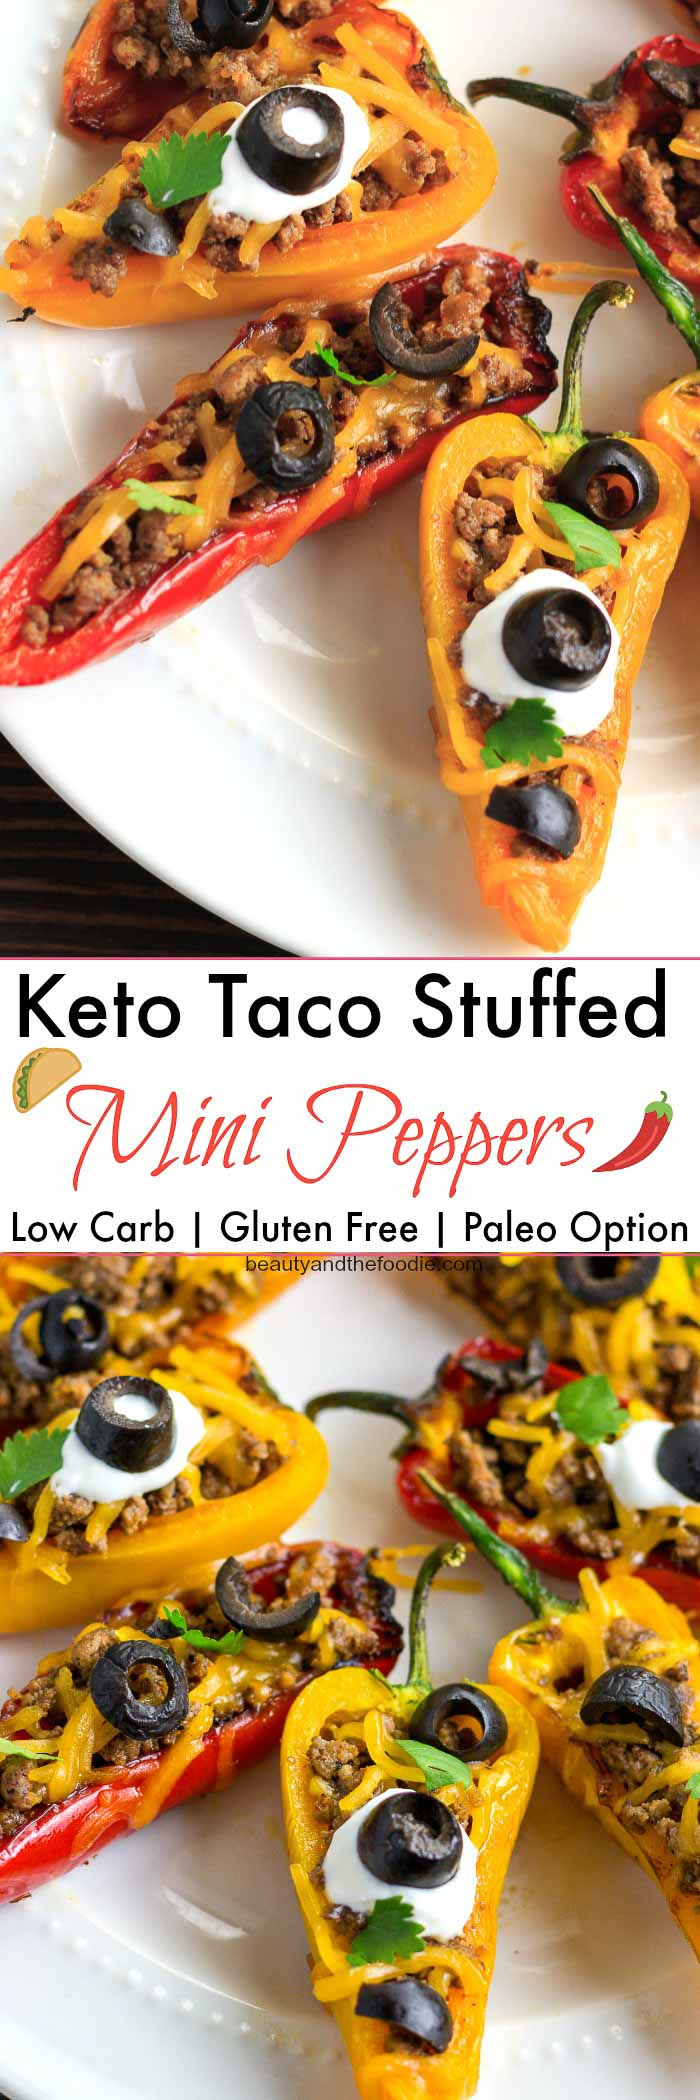 Keto Taco Stuffed Mini Peppers- low carb with paleo option.